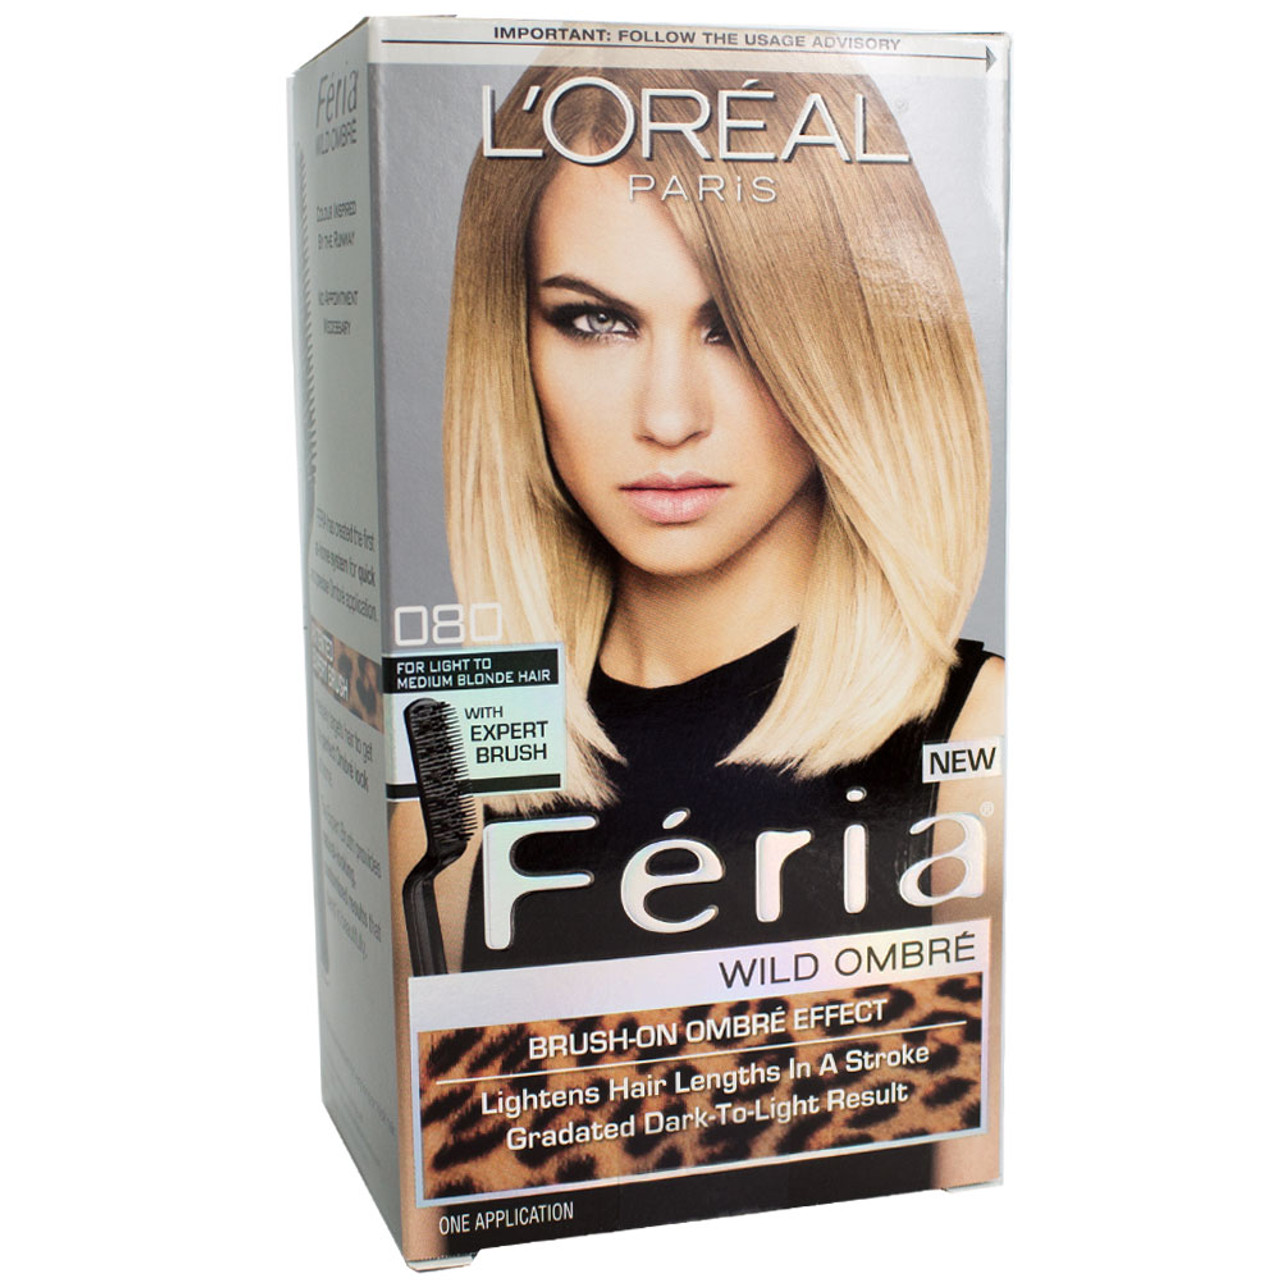 Loreal Feria Wild Ombre Brush On Ombre Effect Hair Color